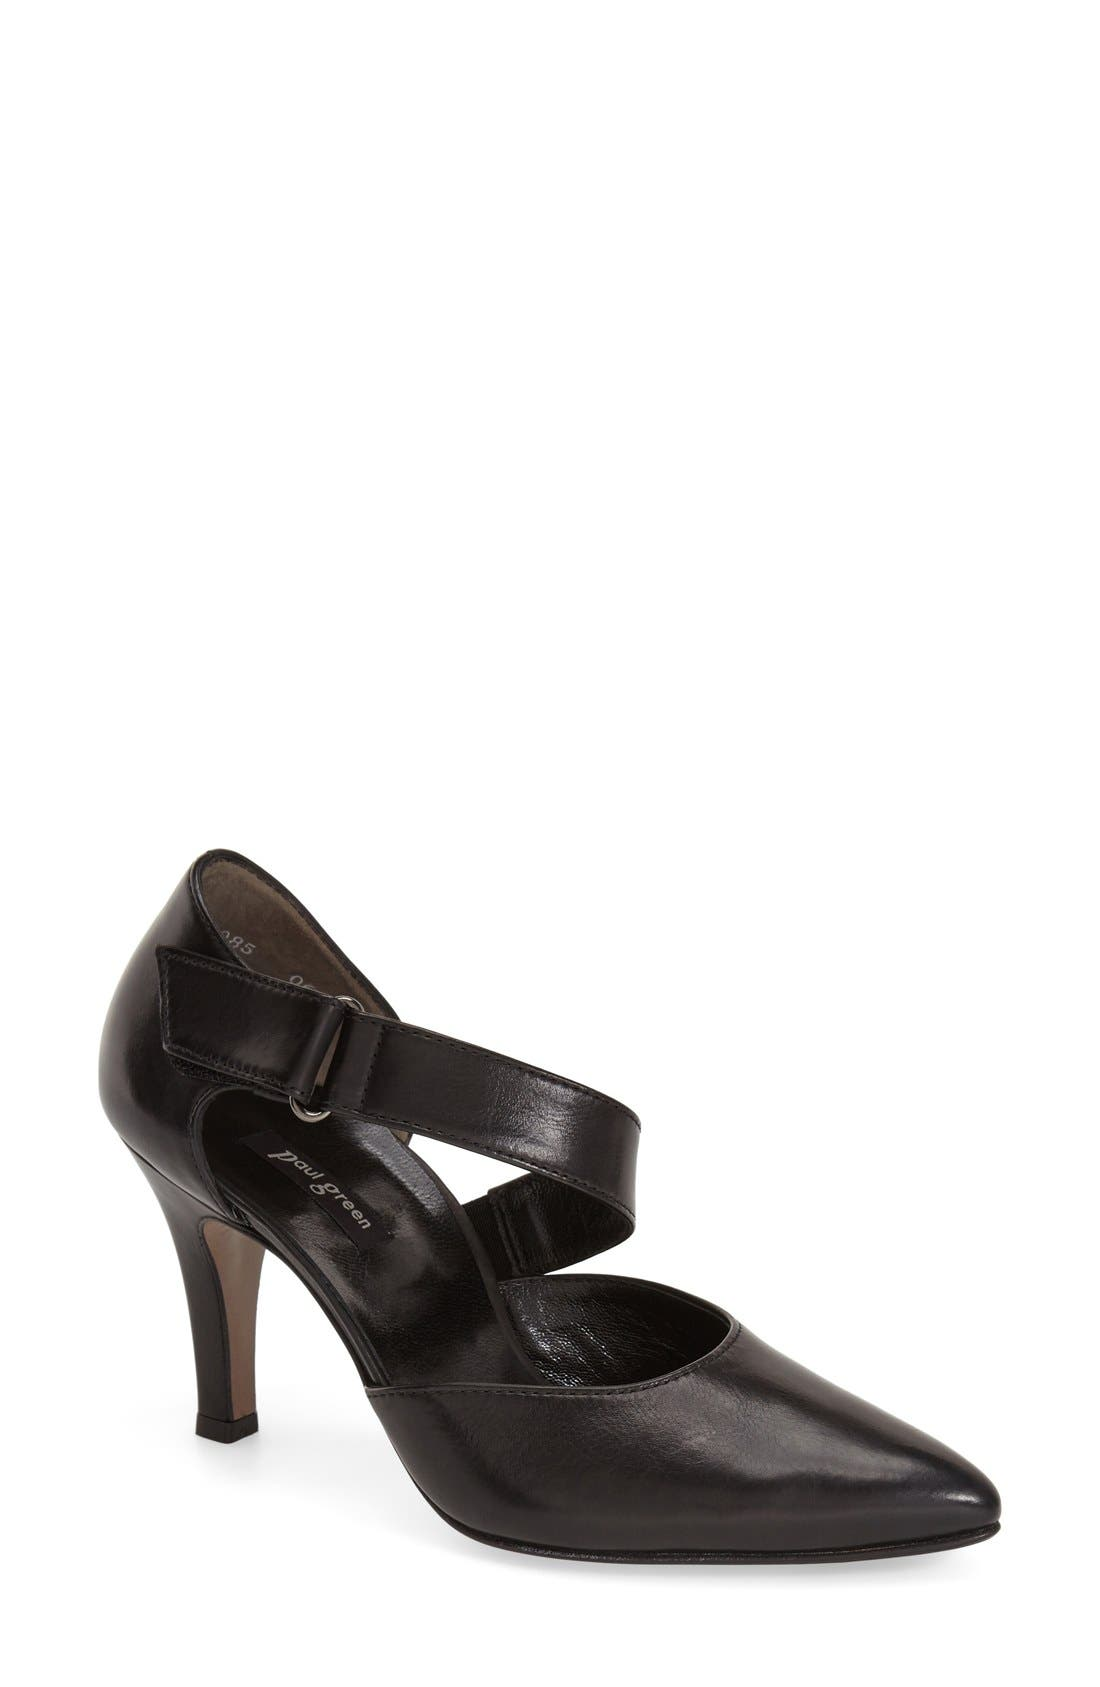 PAUL GREEN 'Desire' Pointy Toe d'Orsay Pump, Main, color, 001